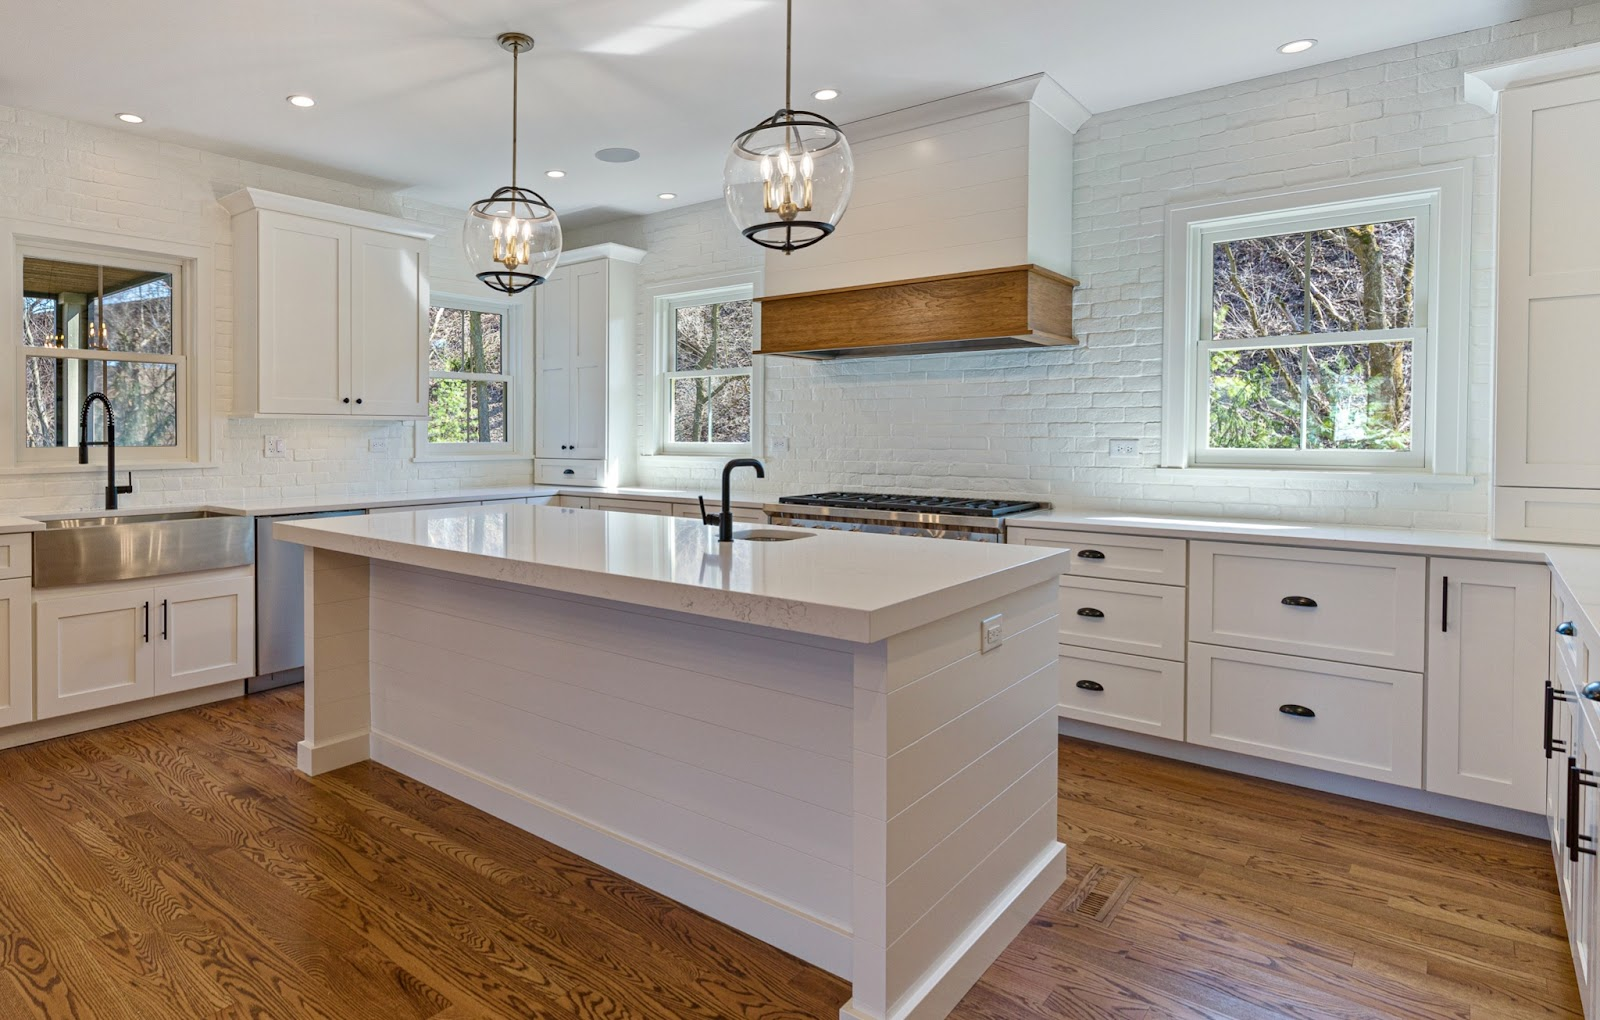 White kitchen with a natural wood accented range hood and white painted brick backsplash for added interest and texture. Featuring a stainless steel apron sink and appliances, black faucets and globe pendant lights above the kitchen island.